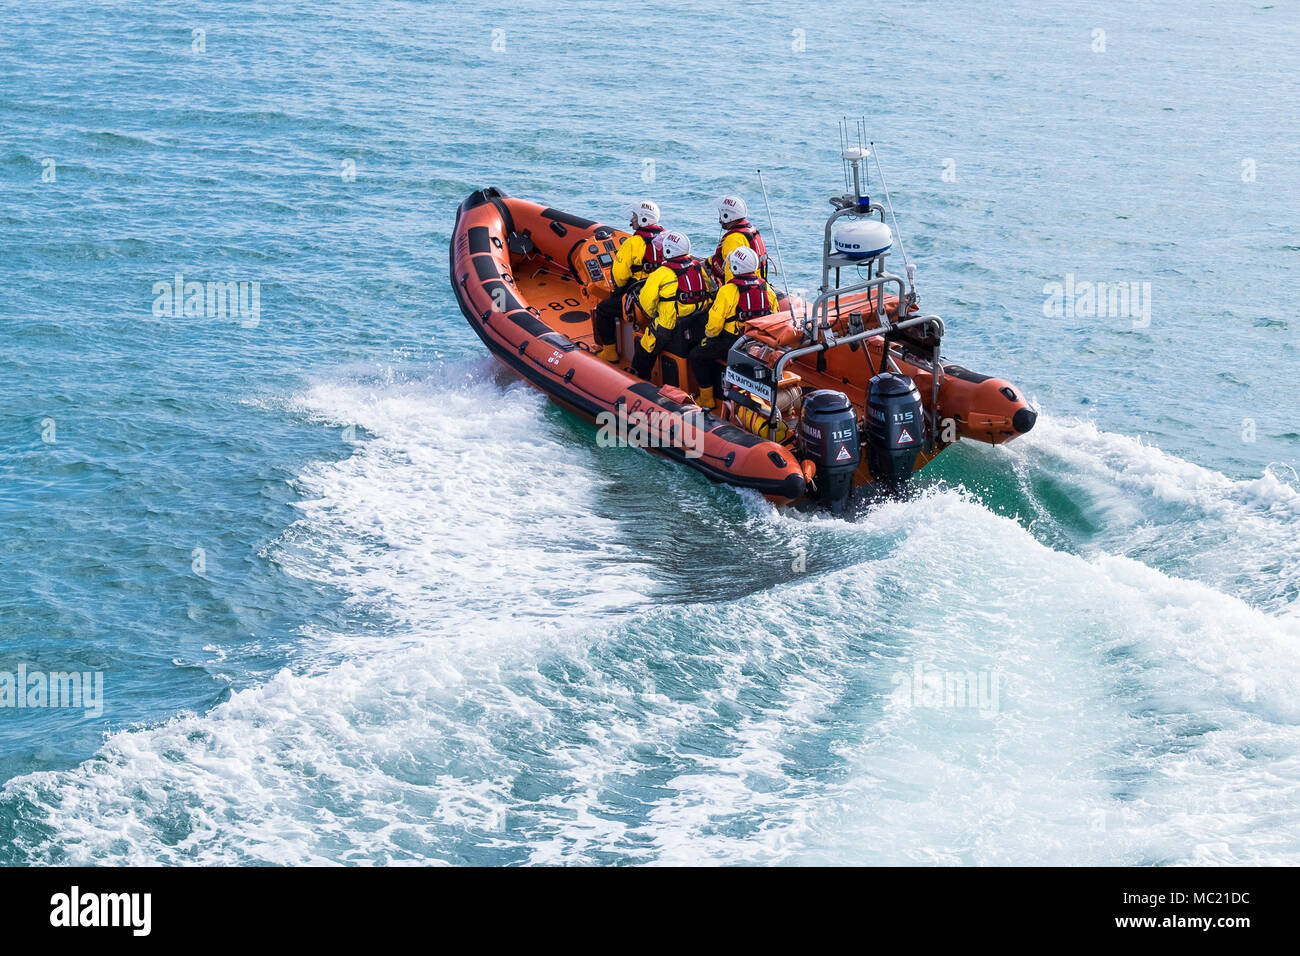 Freiwilligen der Newquay RNLI Crew an einem GMICE (Gute Medizin in anspruchsvollen Umgebungen) Major Incident Übung in Newquay. Stockbild